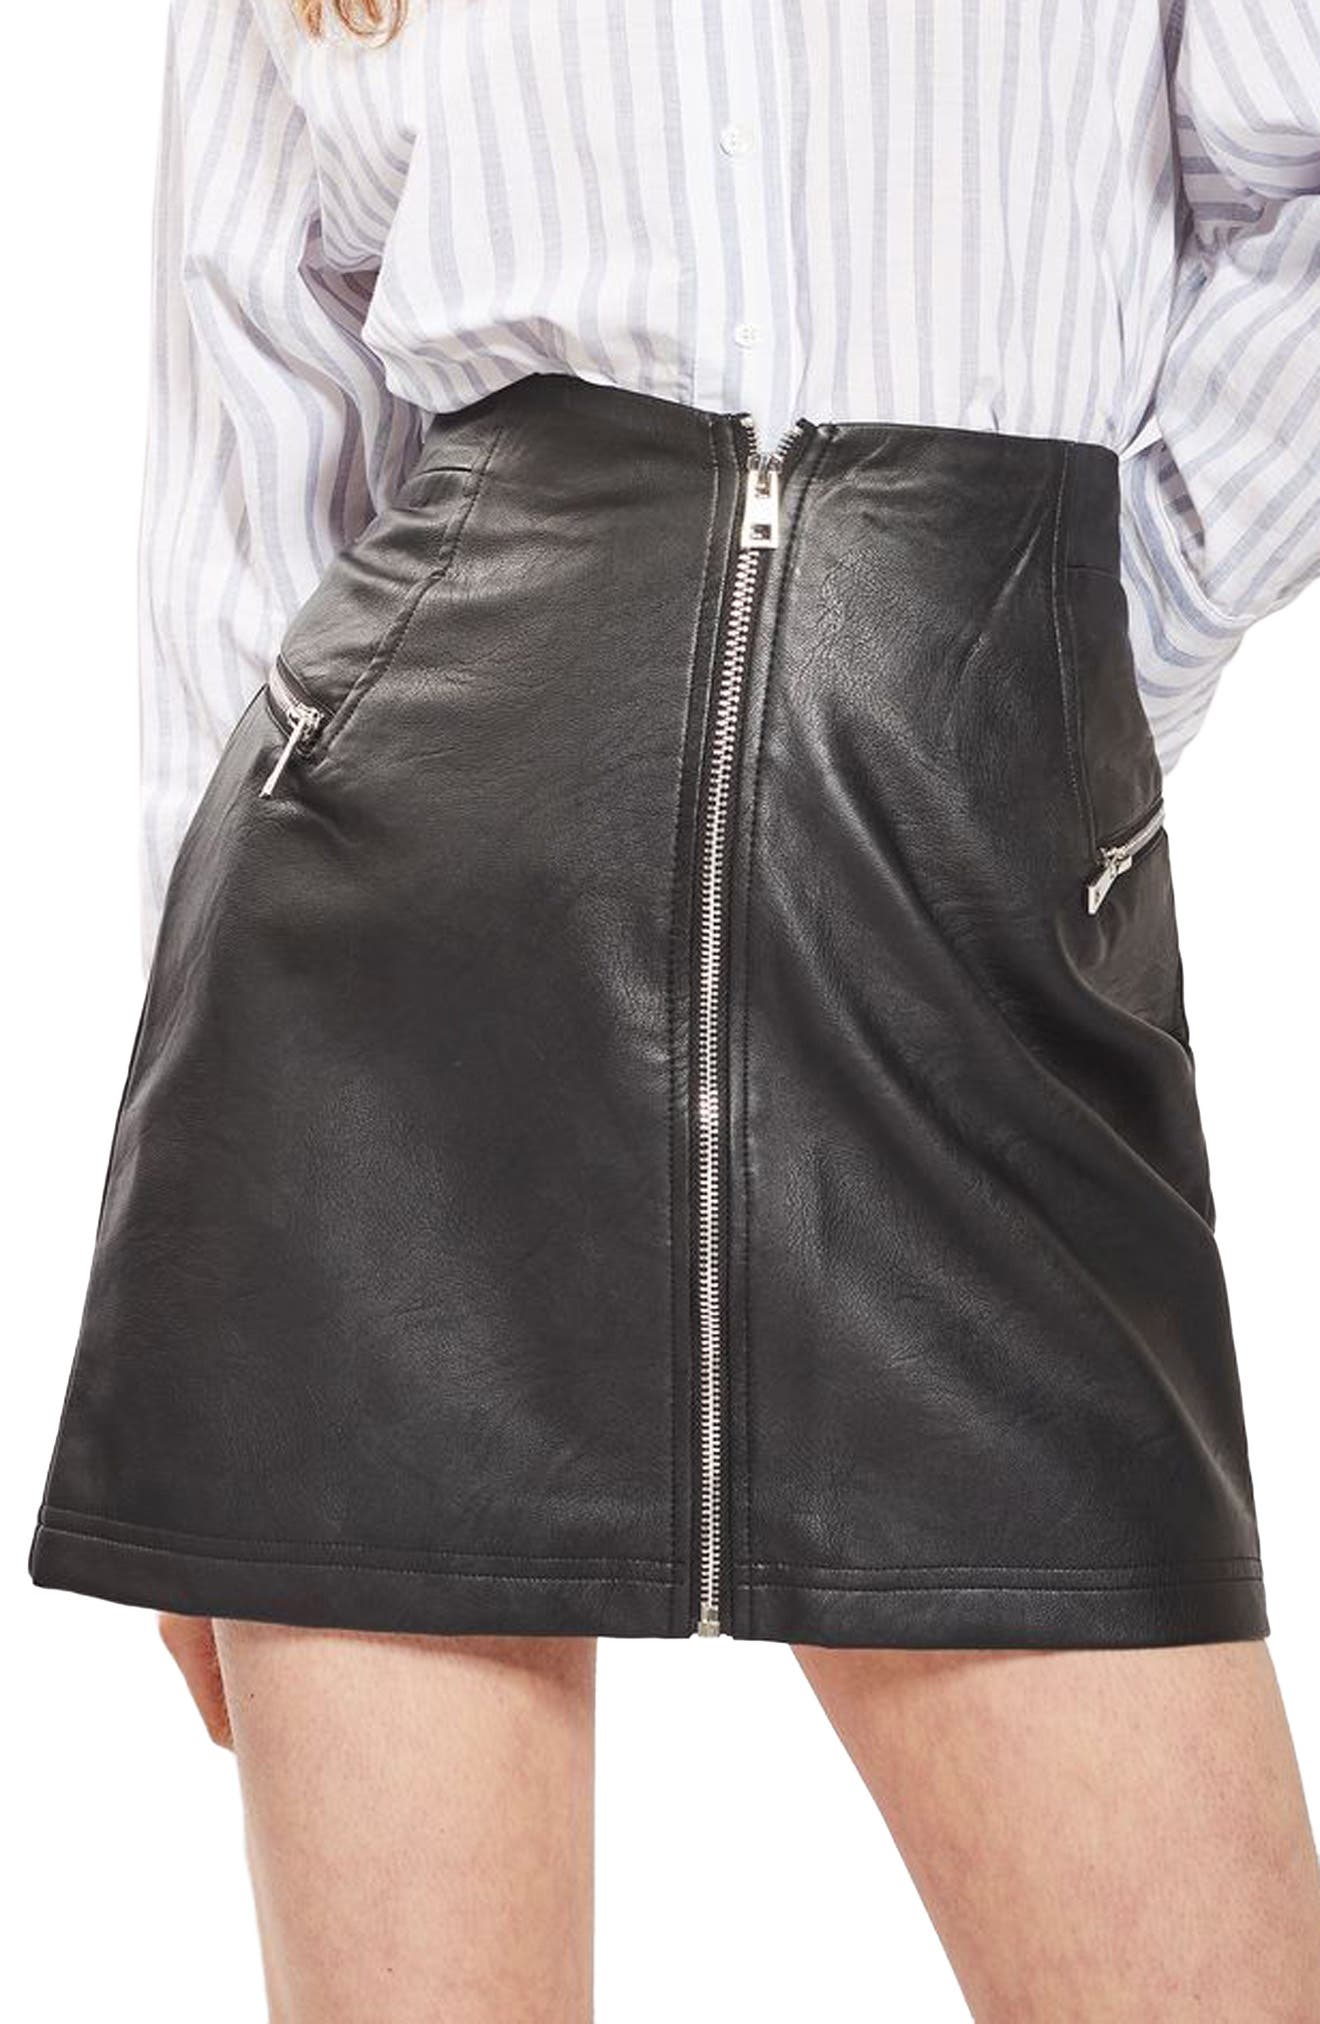 Alternate Image 1 Selected - Topshop Zip Faux Leather Miniskirt